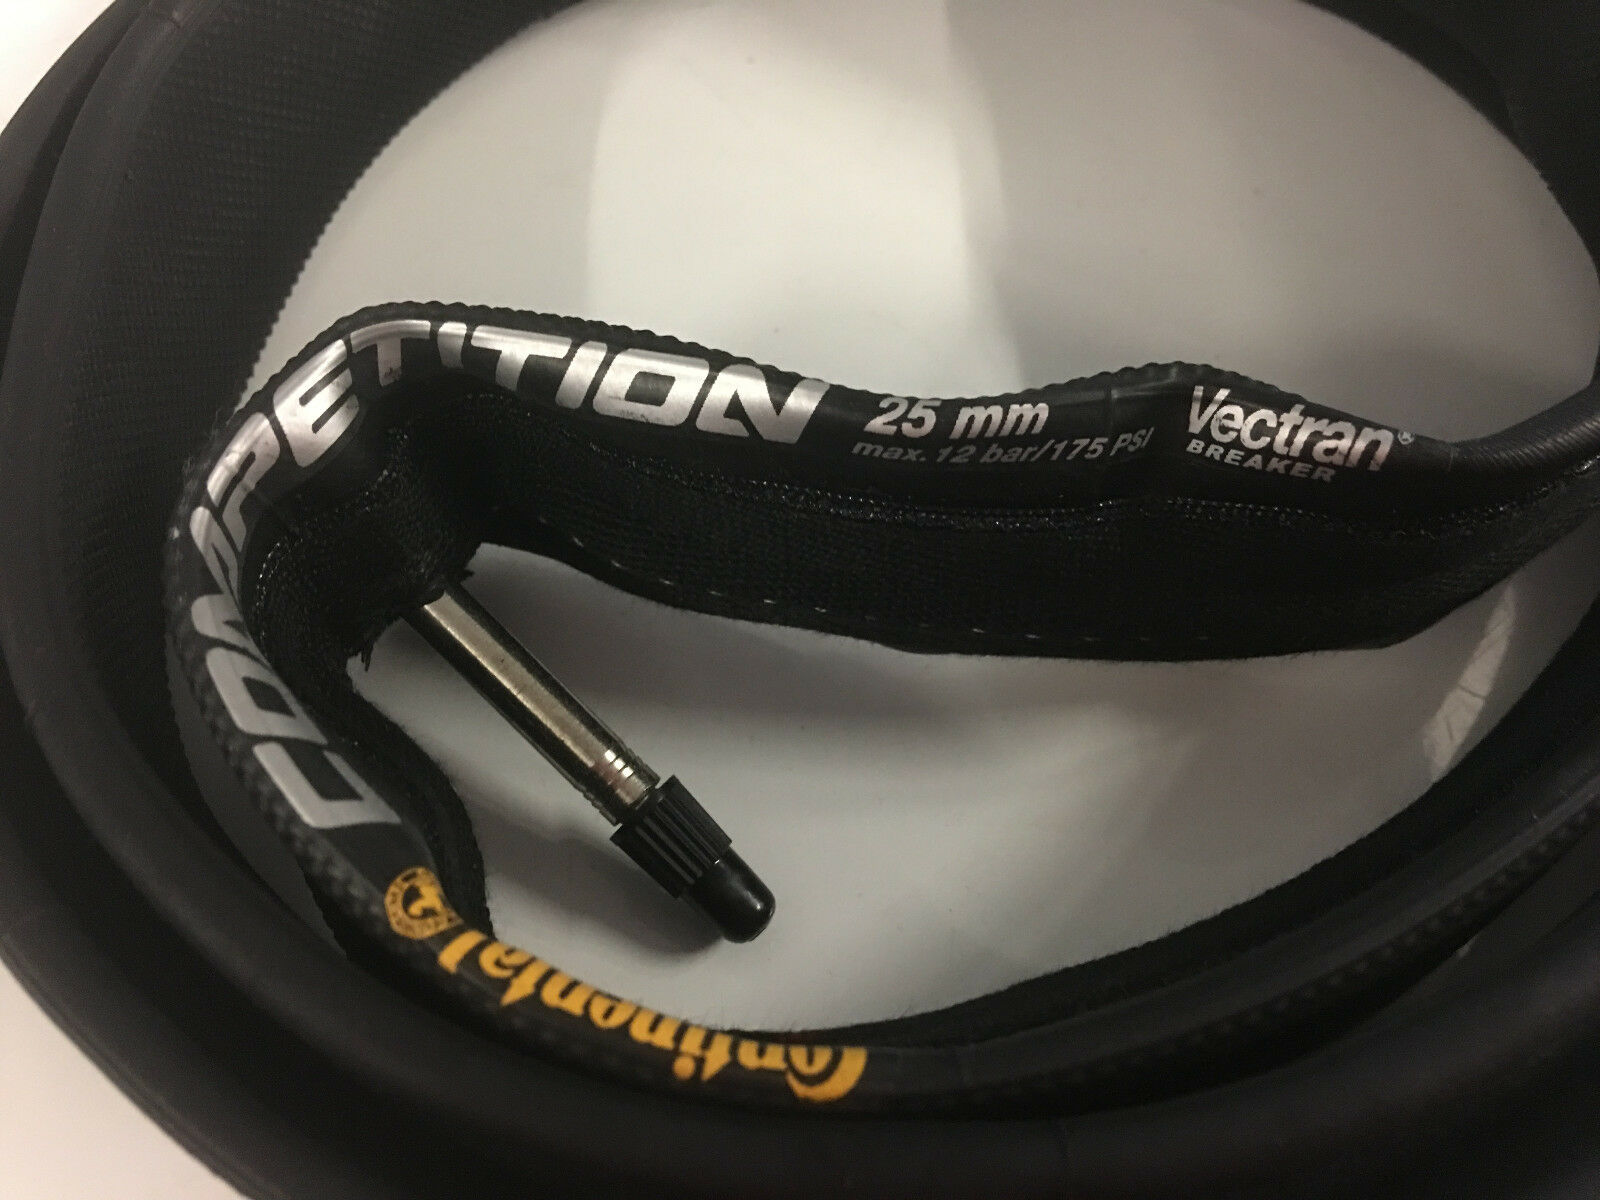 Continental Competition Lightweight Edition 700 x25 Vectran Breaker Tubular Tire